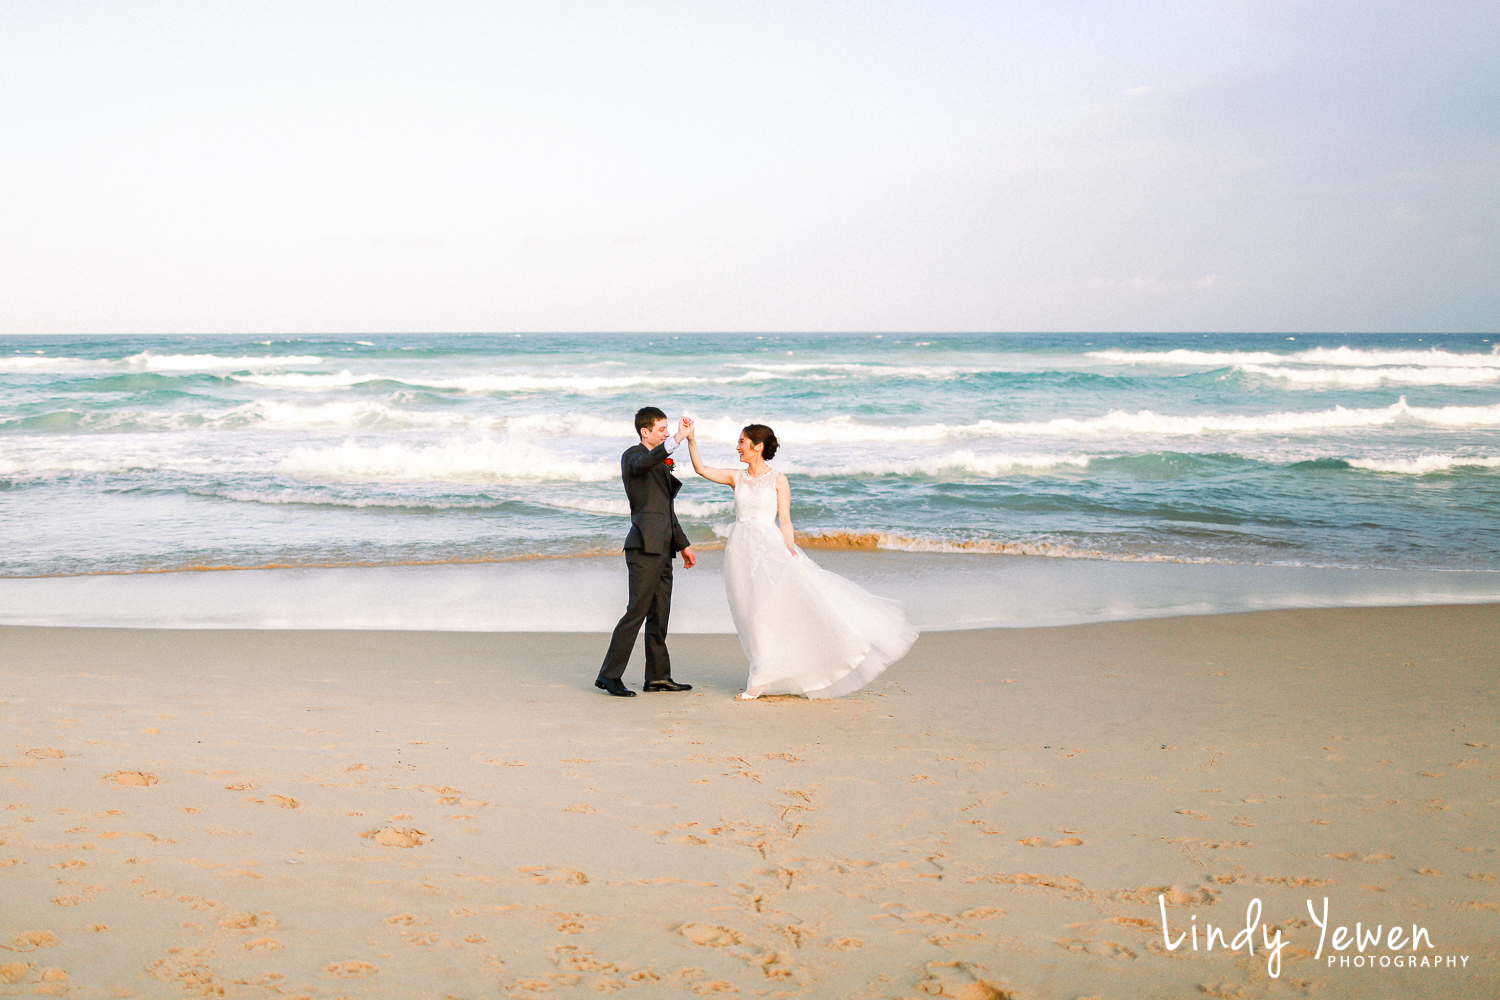 Sunshine-Beach-Weddings-Dimitrije-Maria 175.jpg